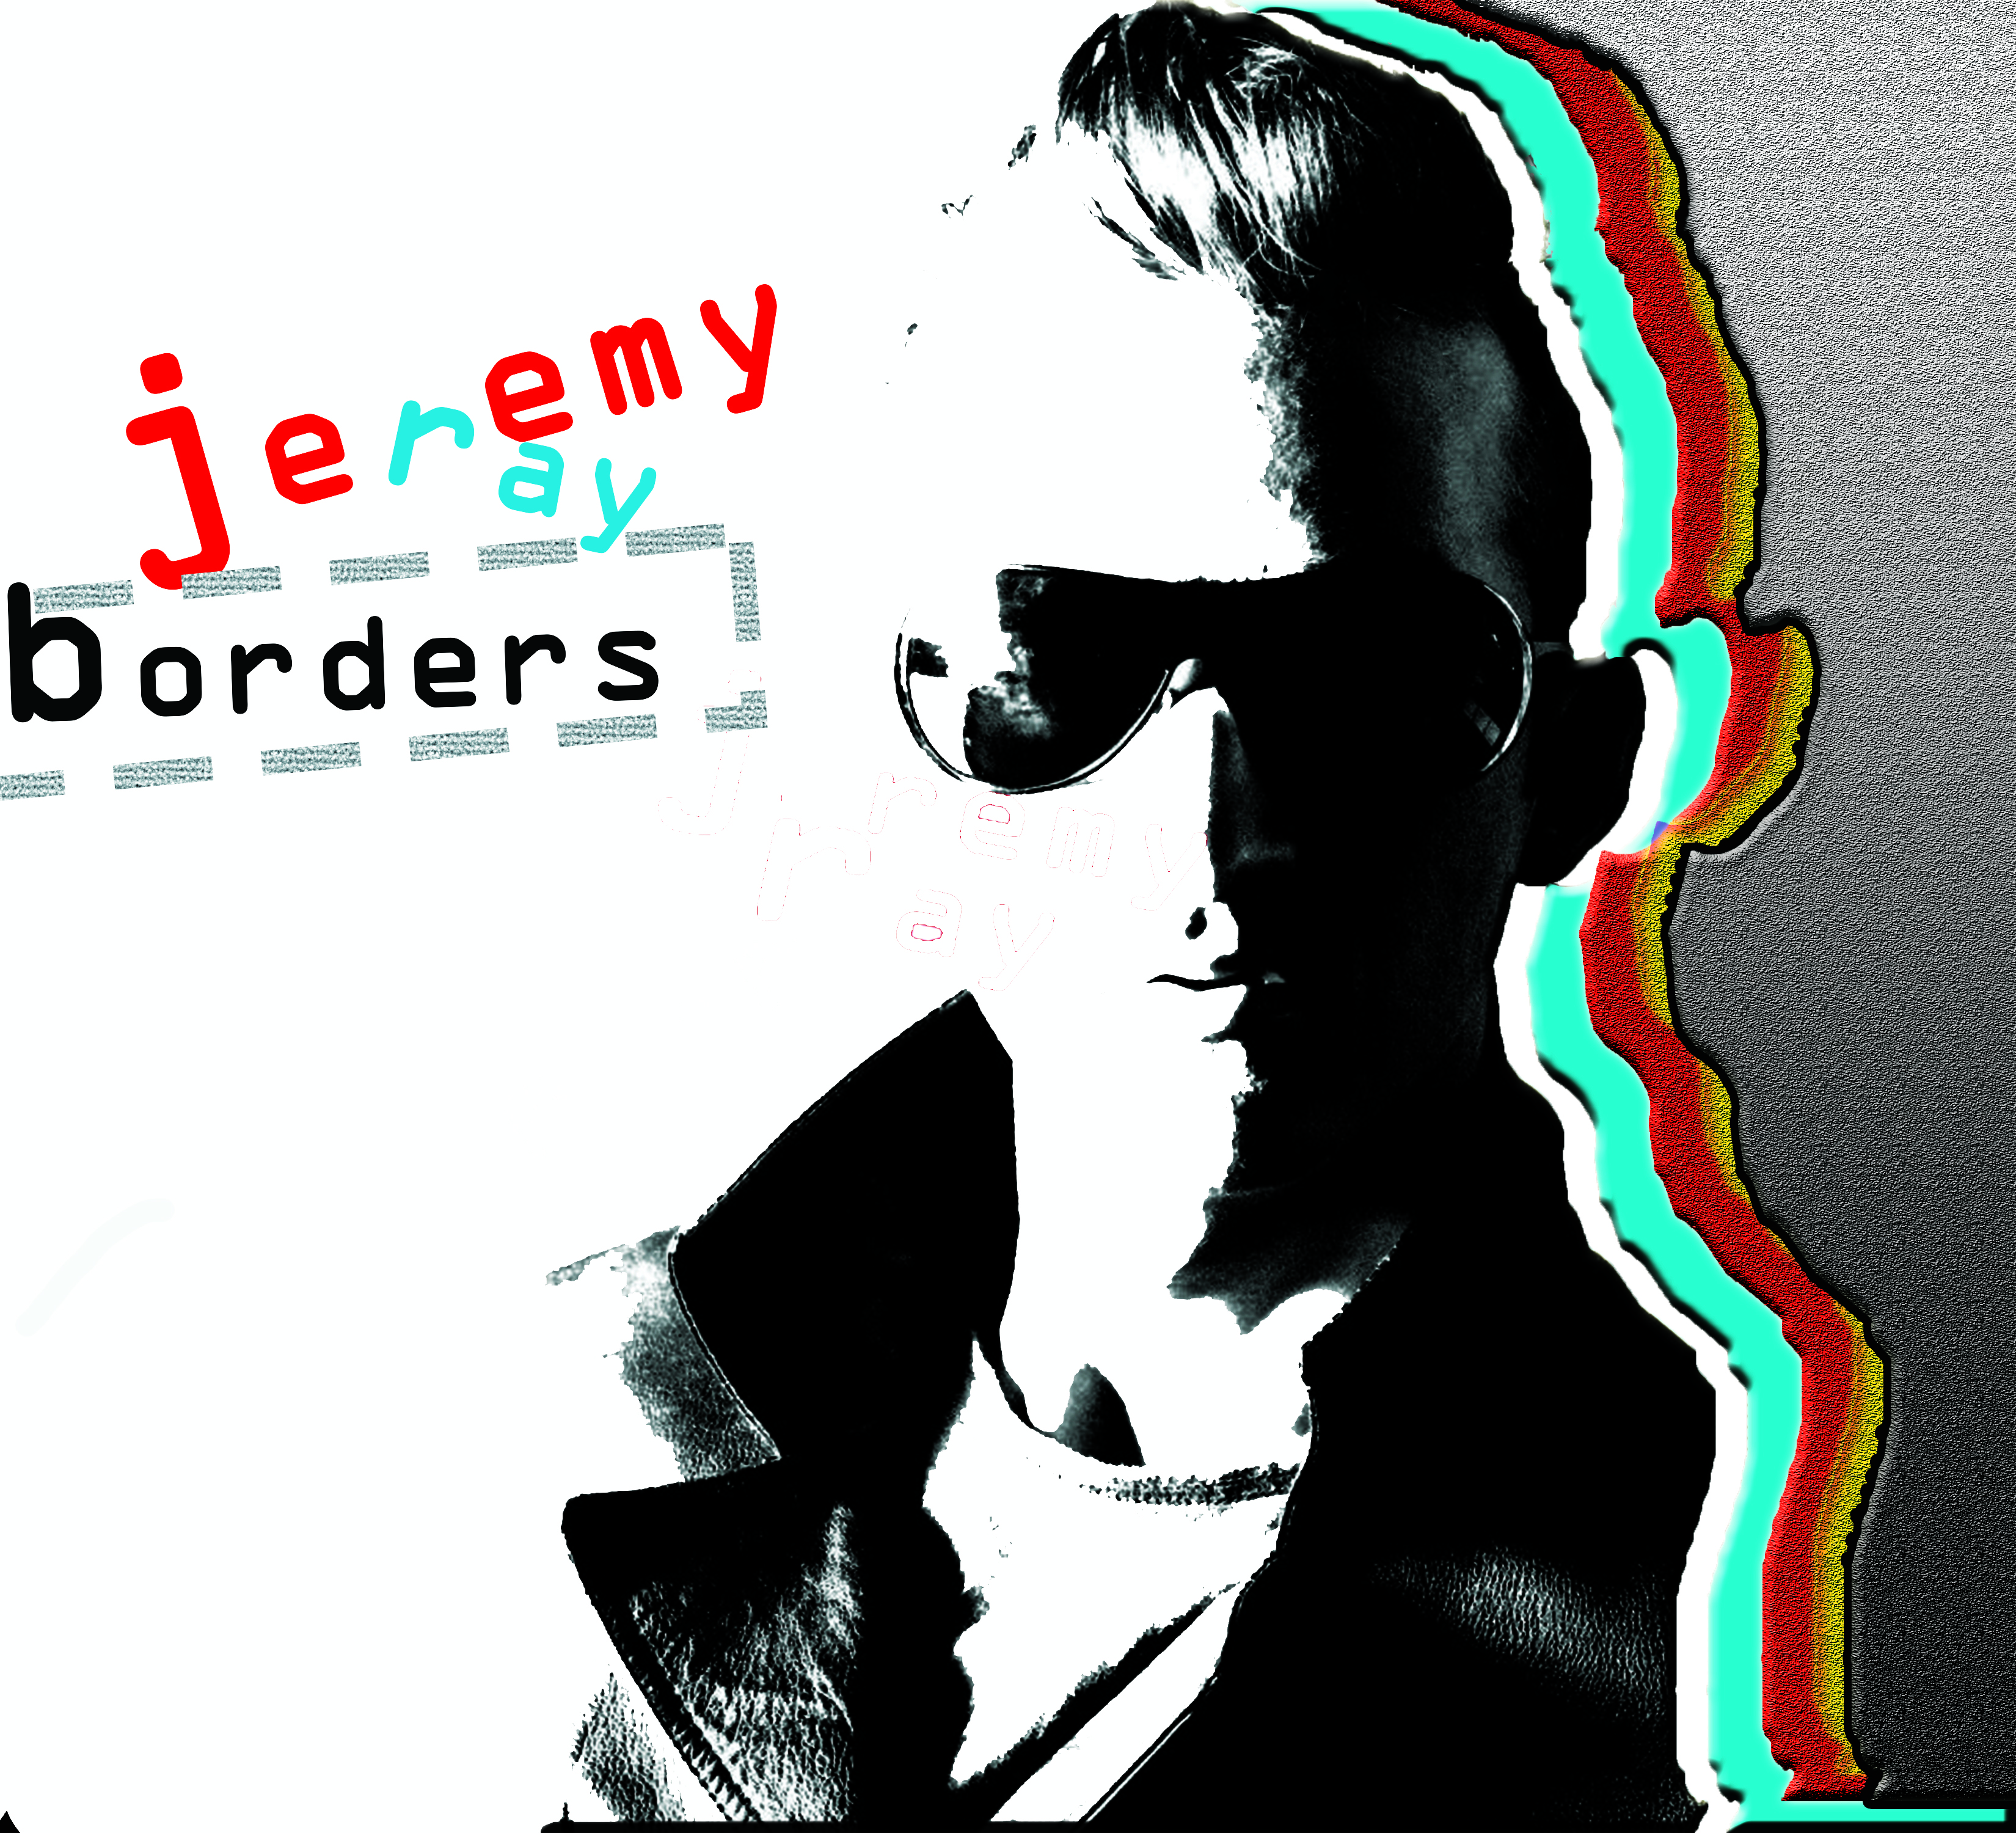 jeremy website 4